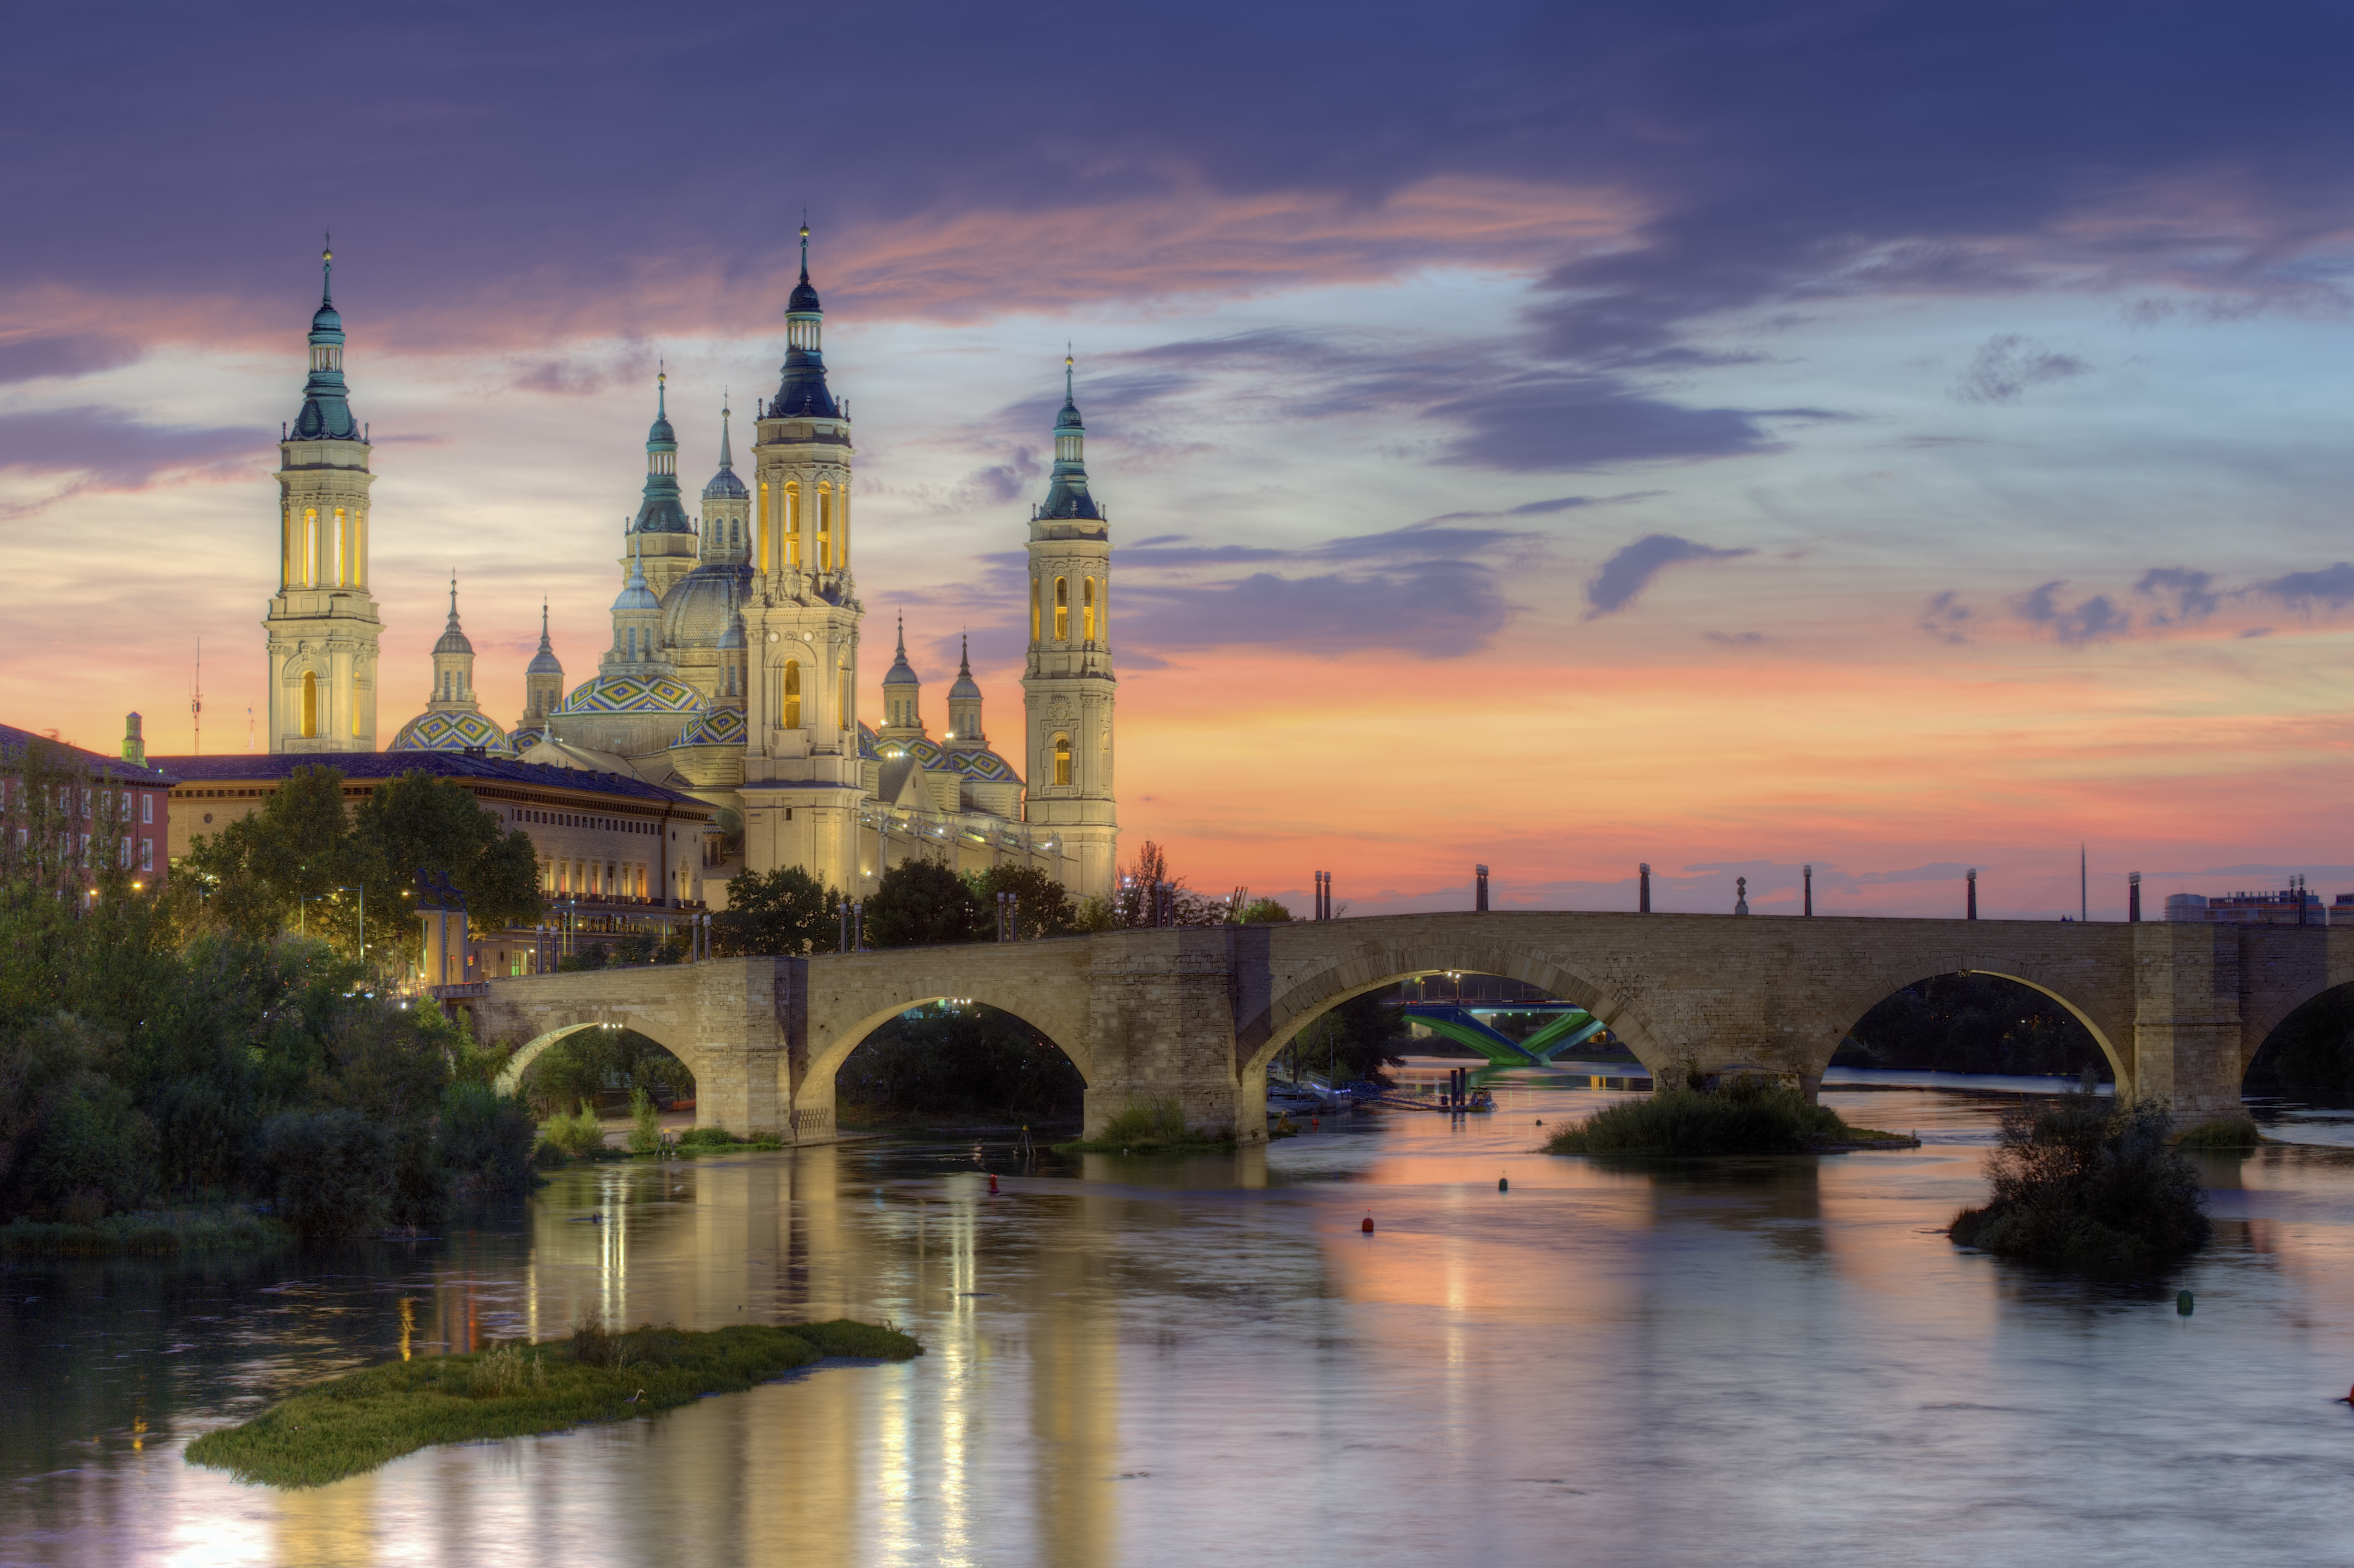 Basilica_of_Our_Lady_of_the_Pillar_and_the_Ebro_River,_Zaragoza.jpg_5400x3597